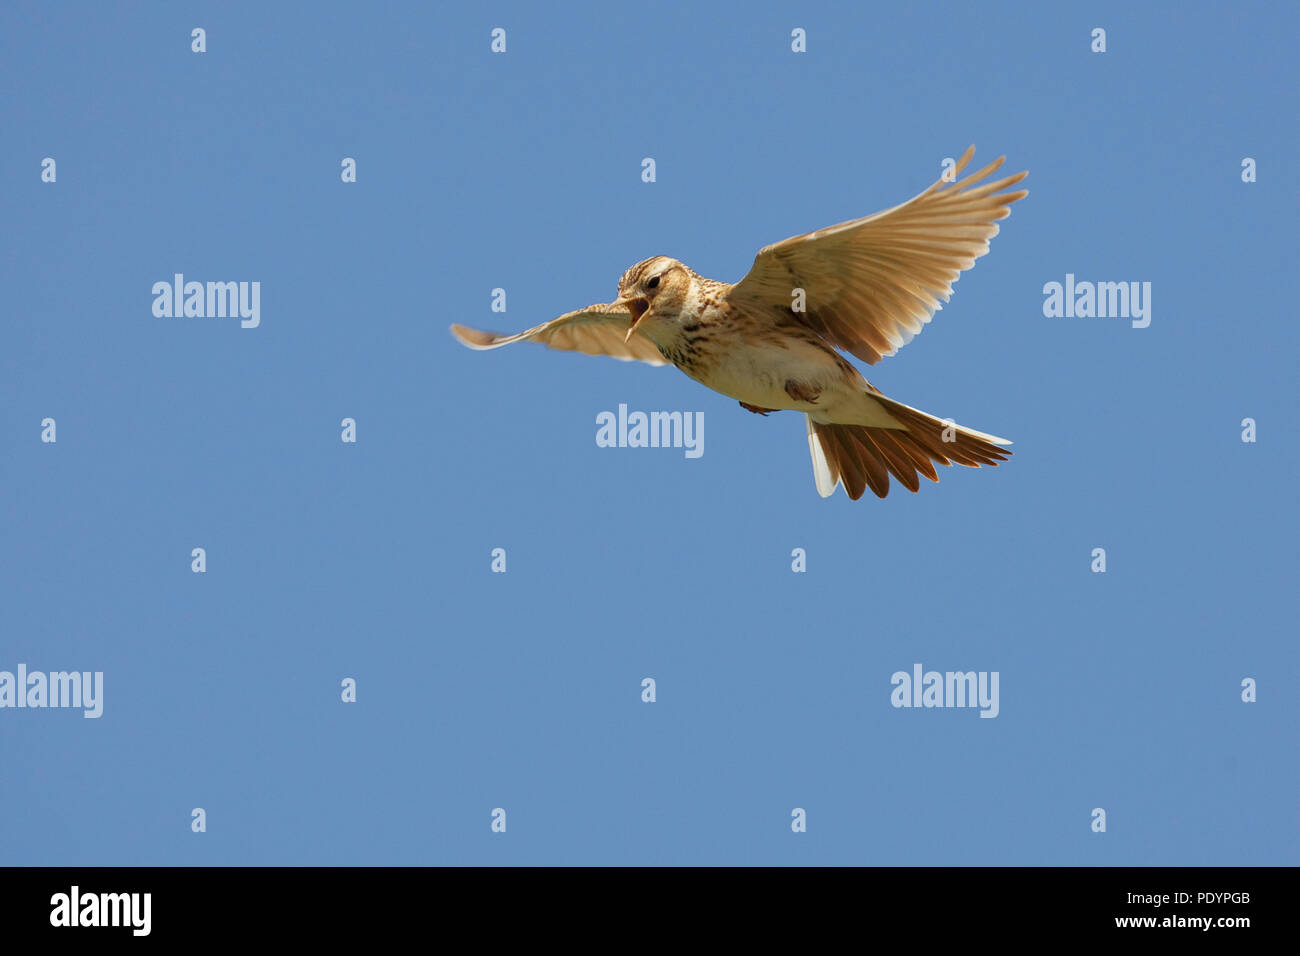 Common Skylark singing in mid air; Alauda arvensis; Veldleeuwerik tijdens zangvlucht - Stock Image